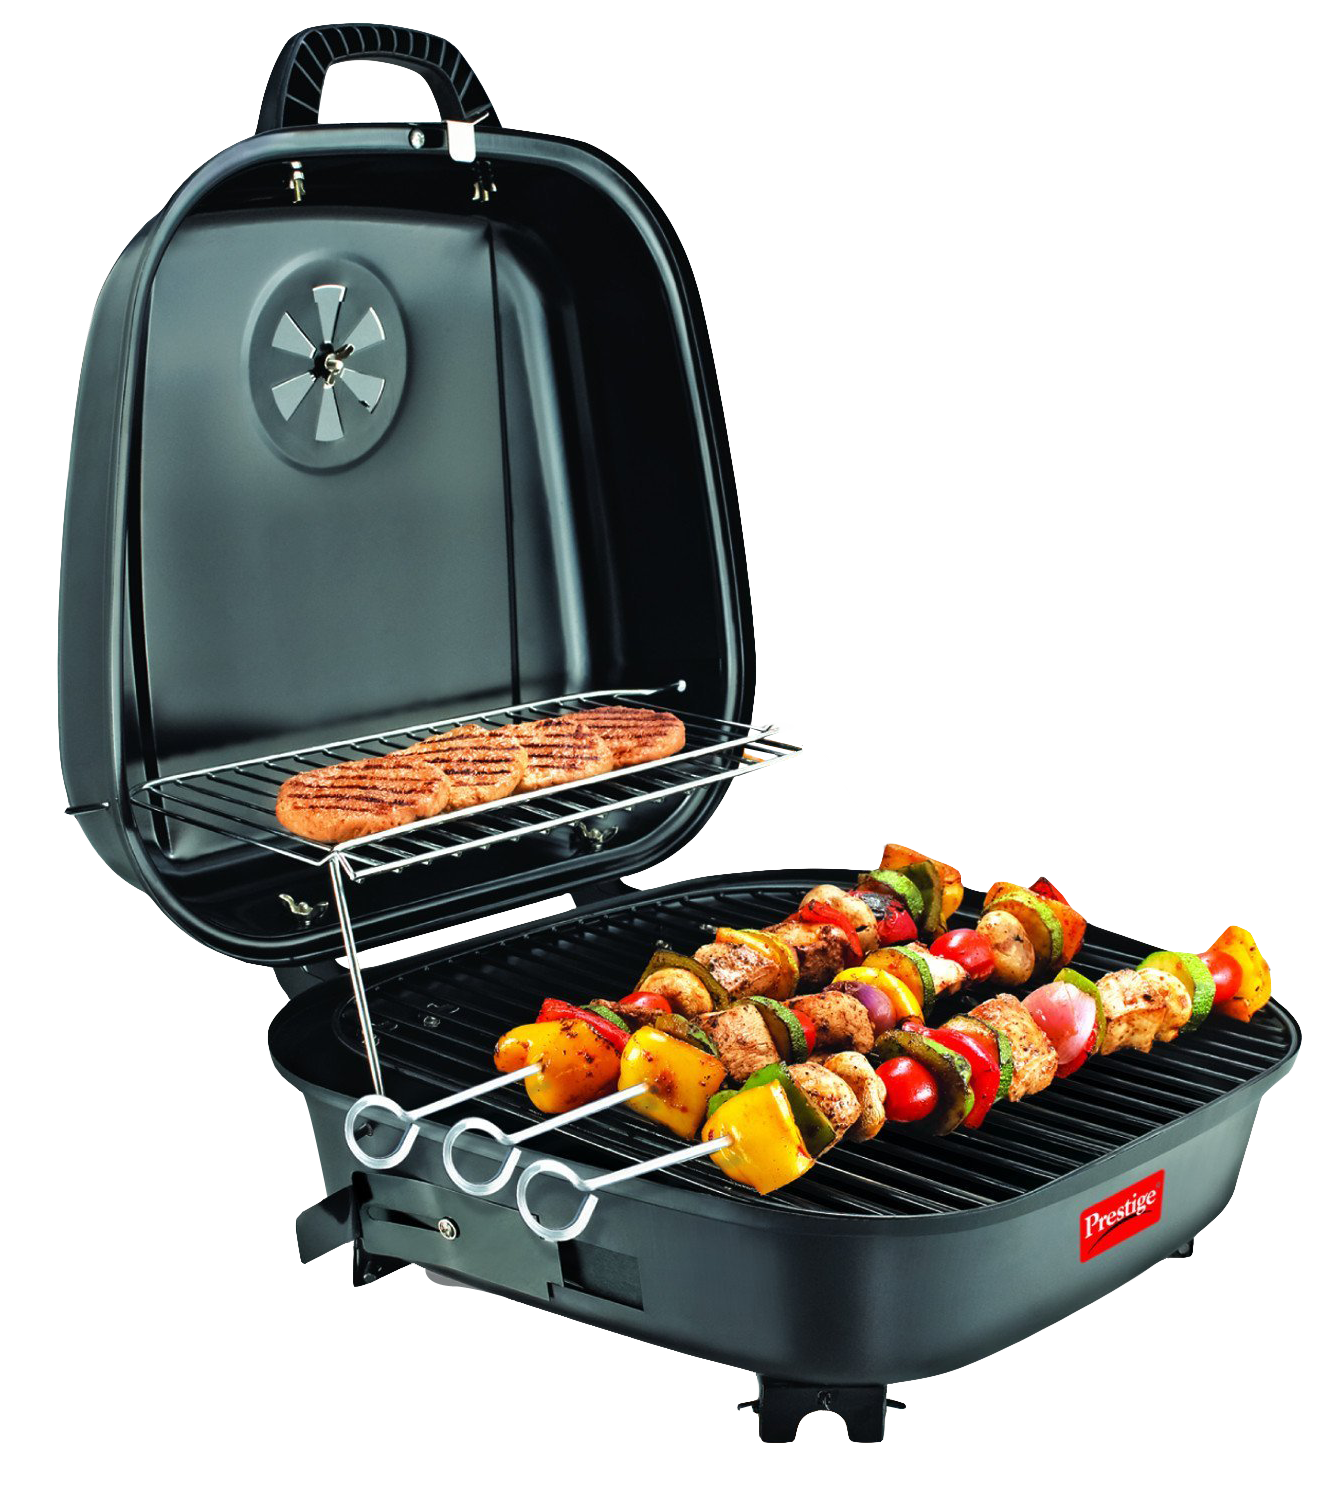 Electric Tandoor Barbeque Grill PNG Image - PurePNG | Free ...